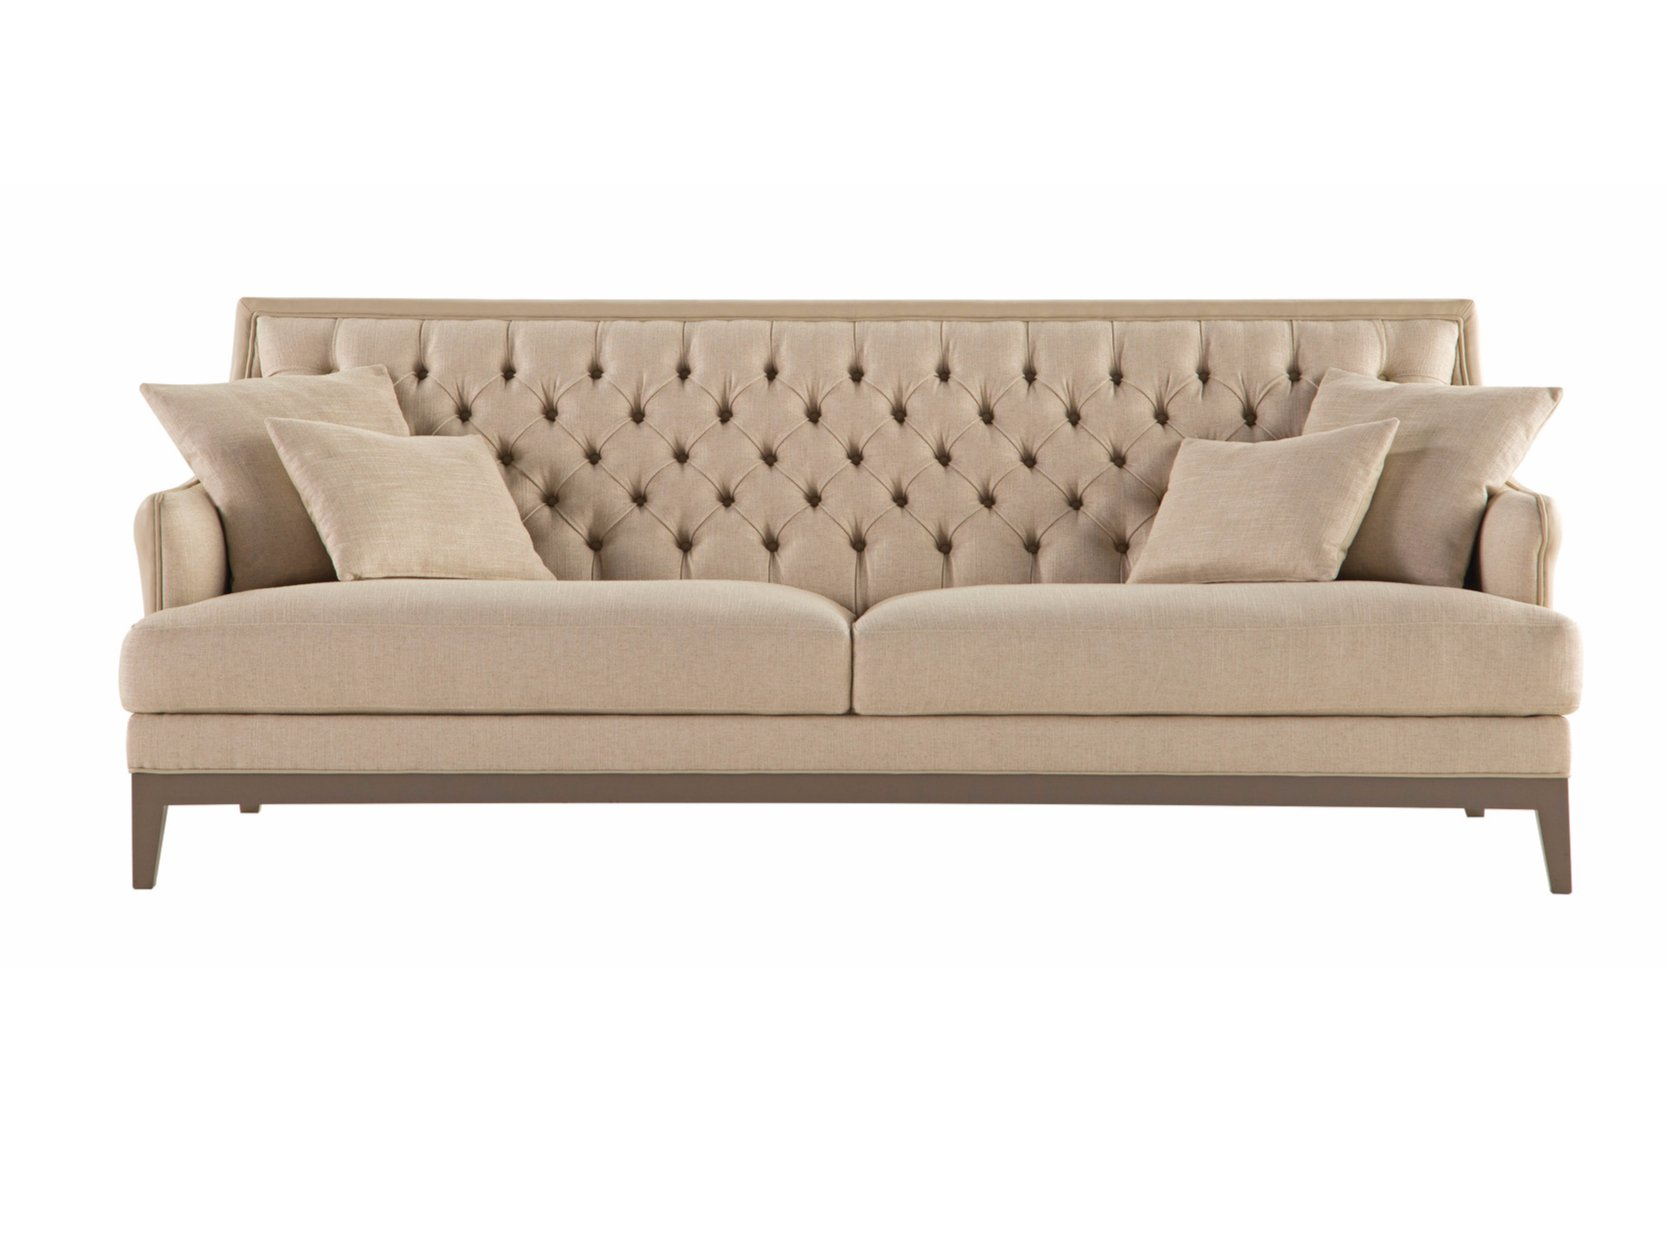 epoq sofa epoq collection by roche bobois design pierre dubois u aim ccil